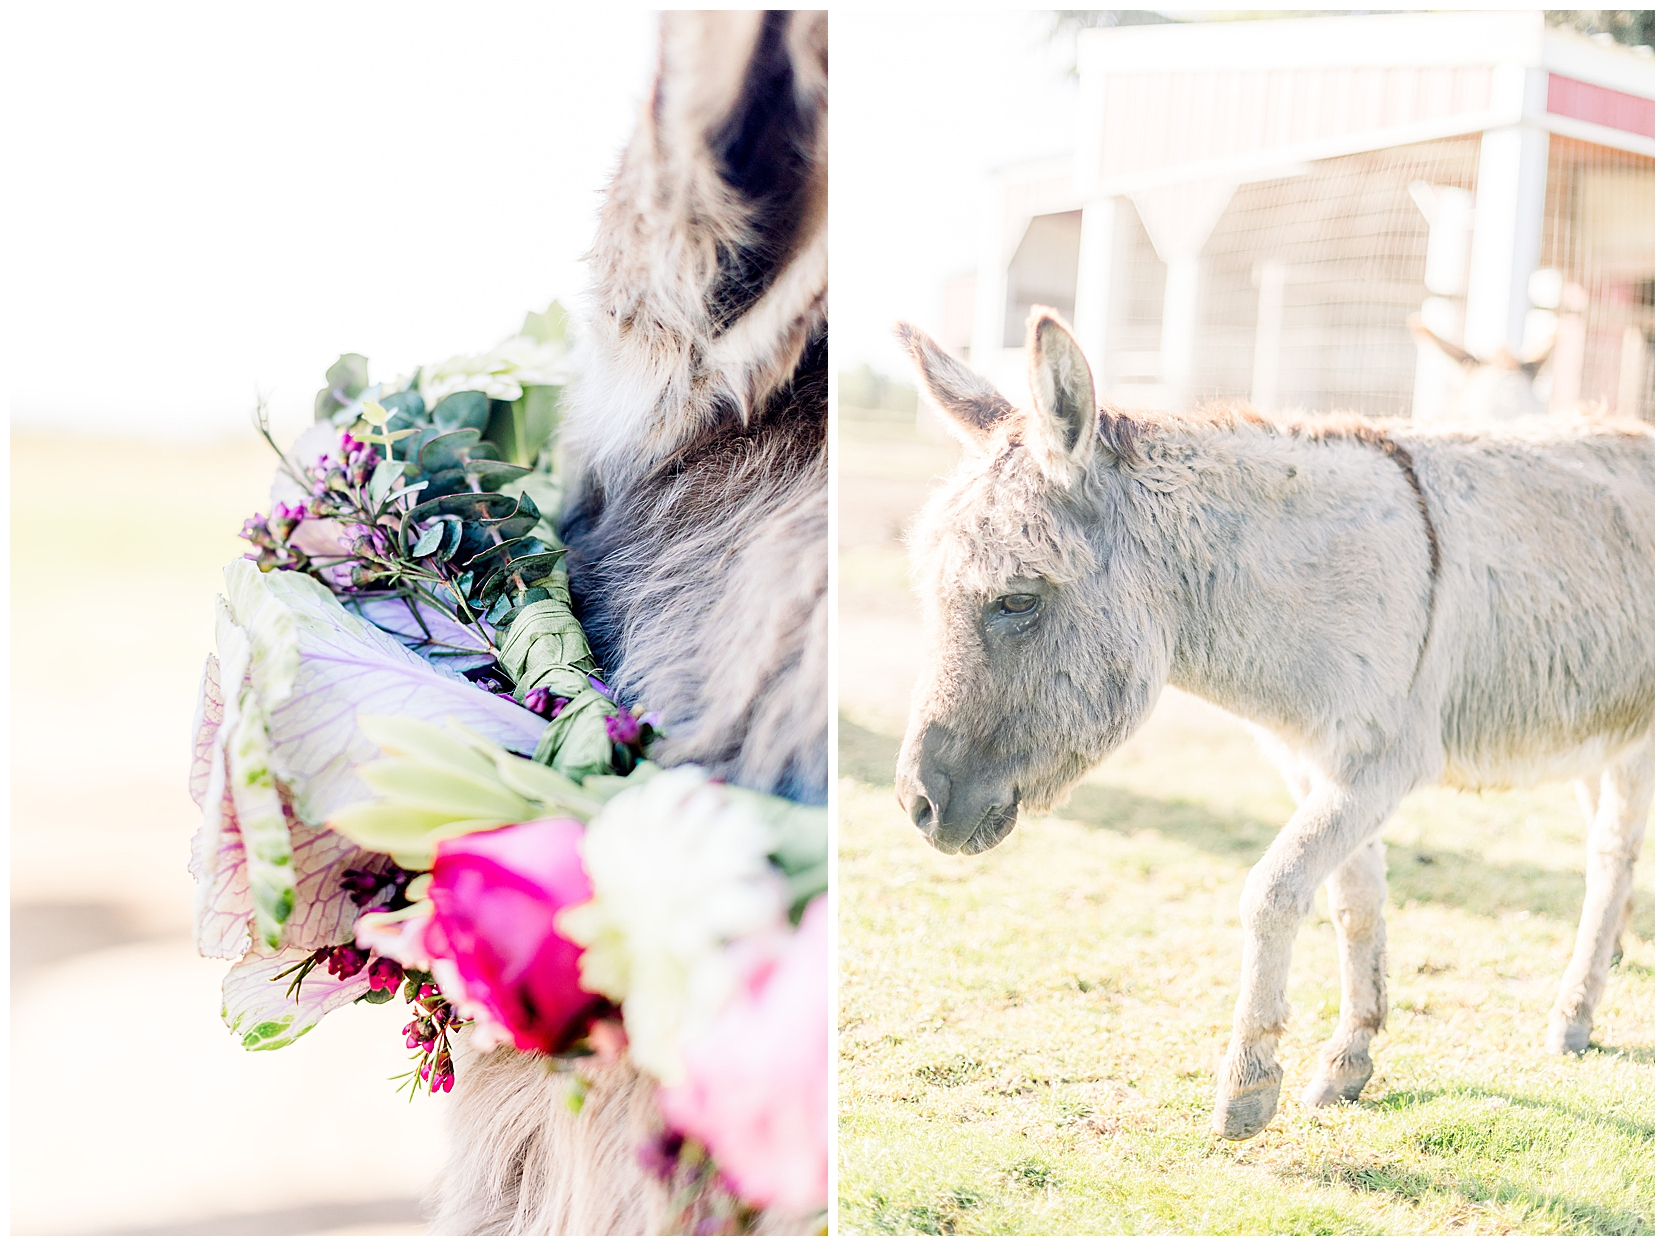 jessicafredericks_st petersburg_wedding_photographer_bridesmaid_farm_donkey_flower crown_inspo_0004.jpg